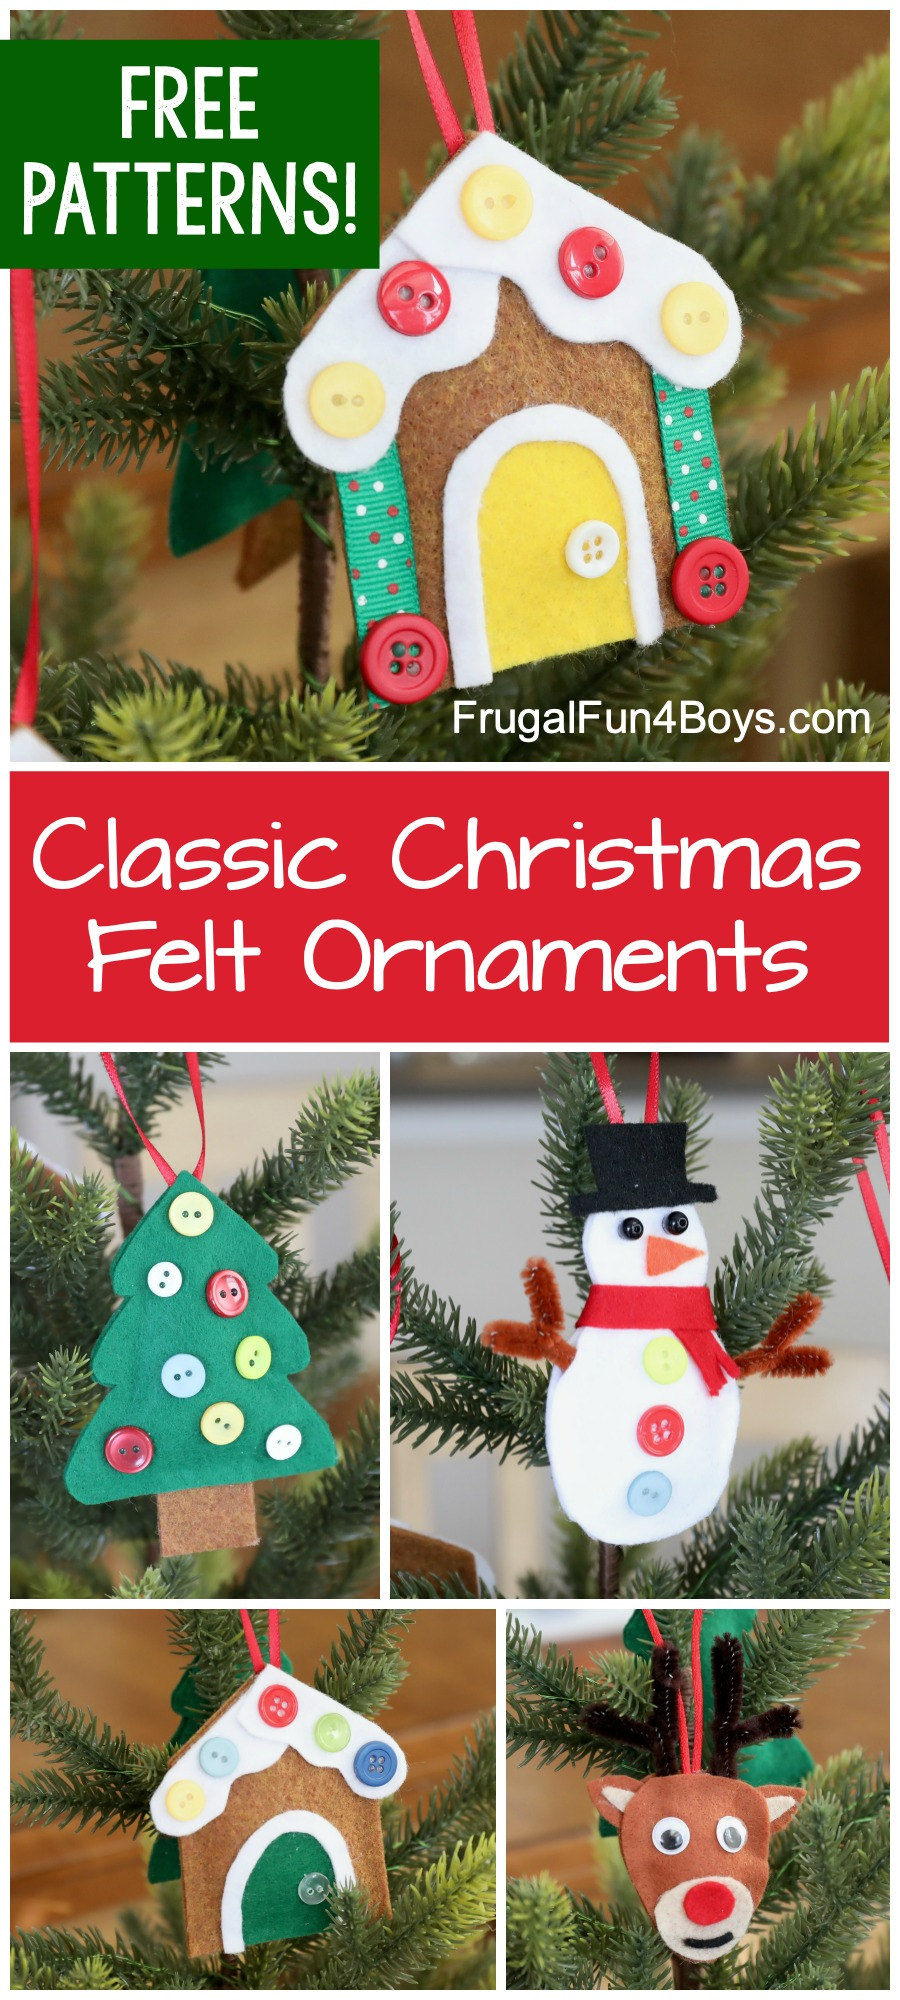 Classic Felt Christmas Ornaments with printable patterns